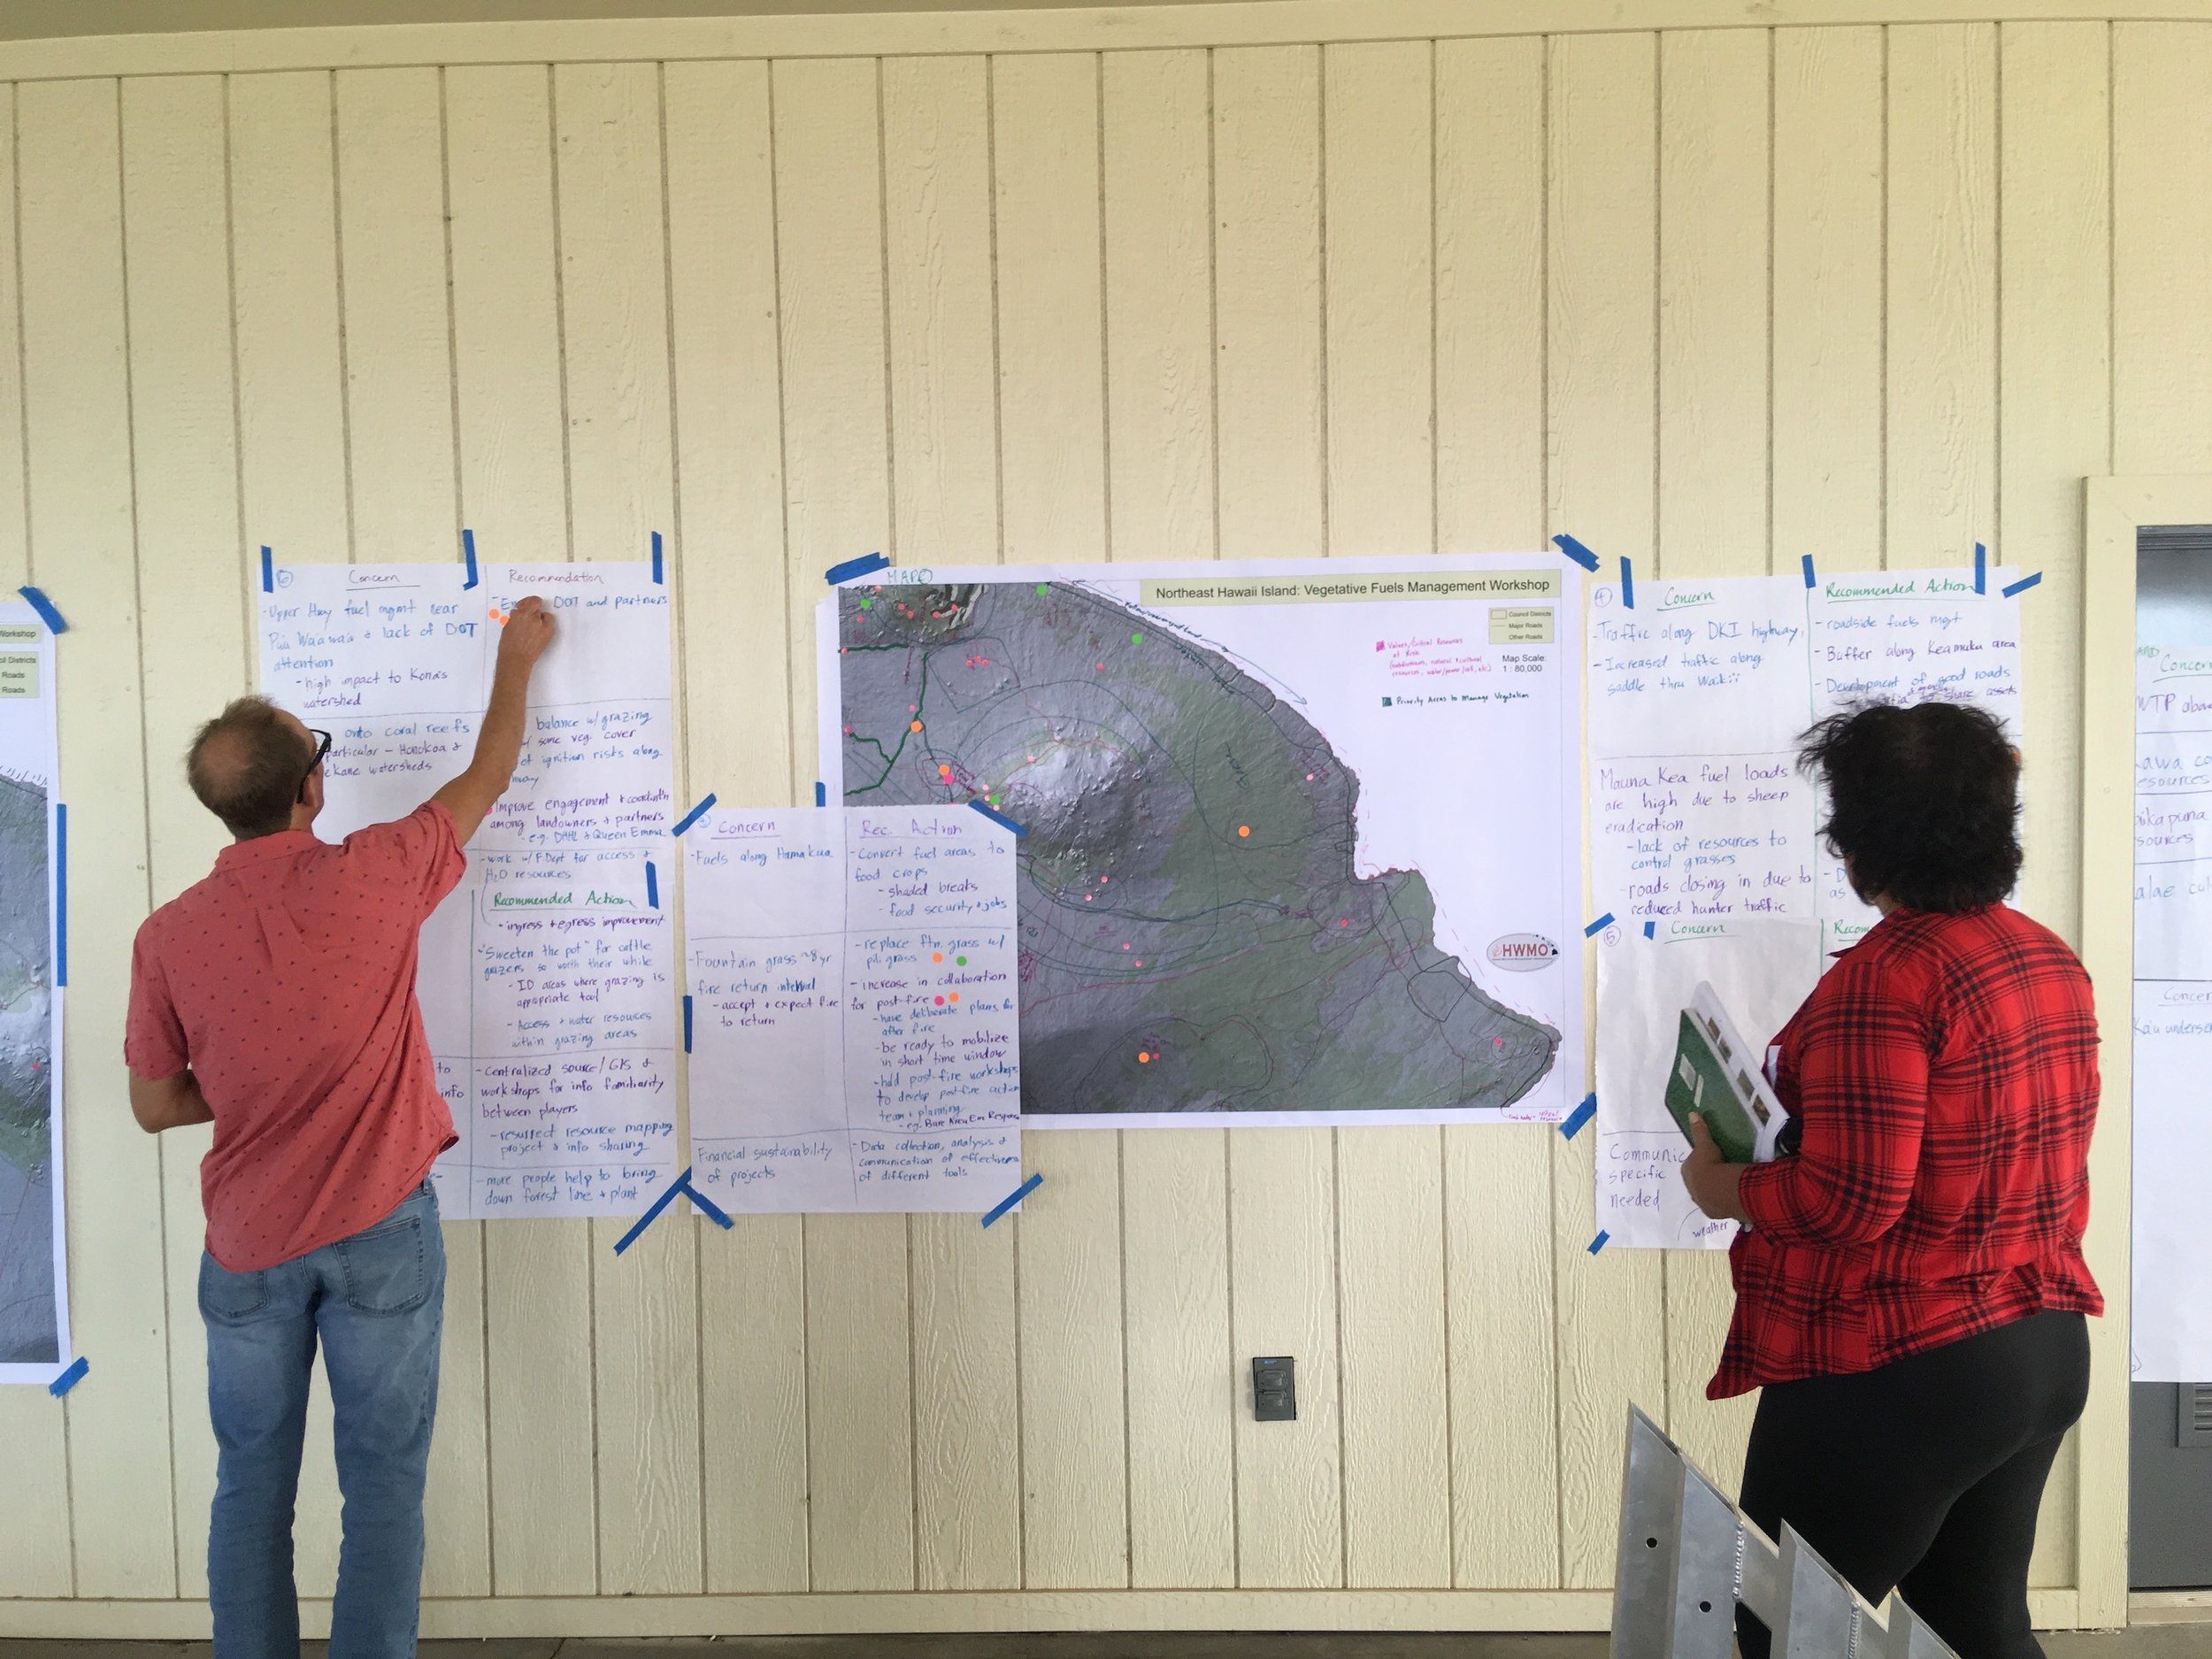 Hawaii Island Kailapa Vegetative Fuels Management Collaborative Action Planning Workshop_2_26_2019_72.jpg